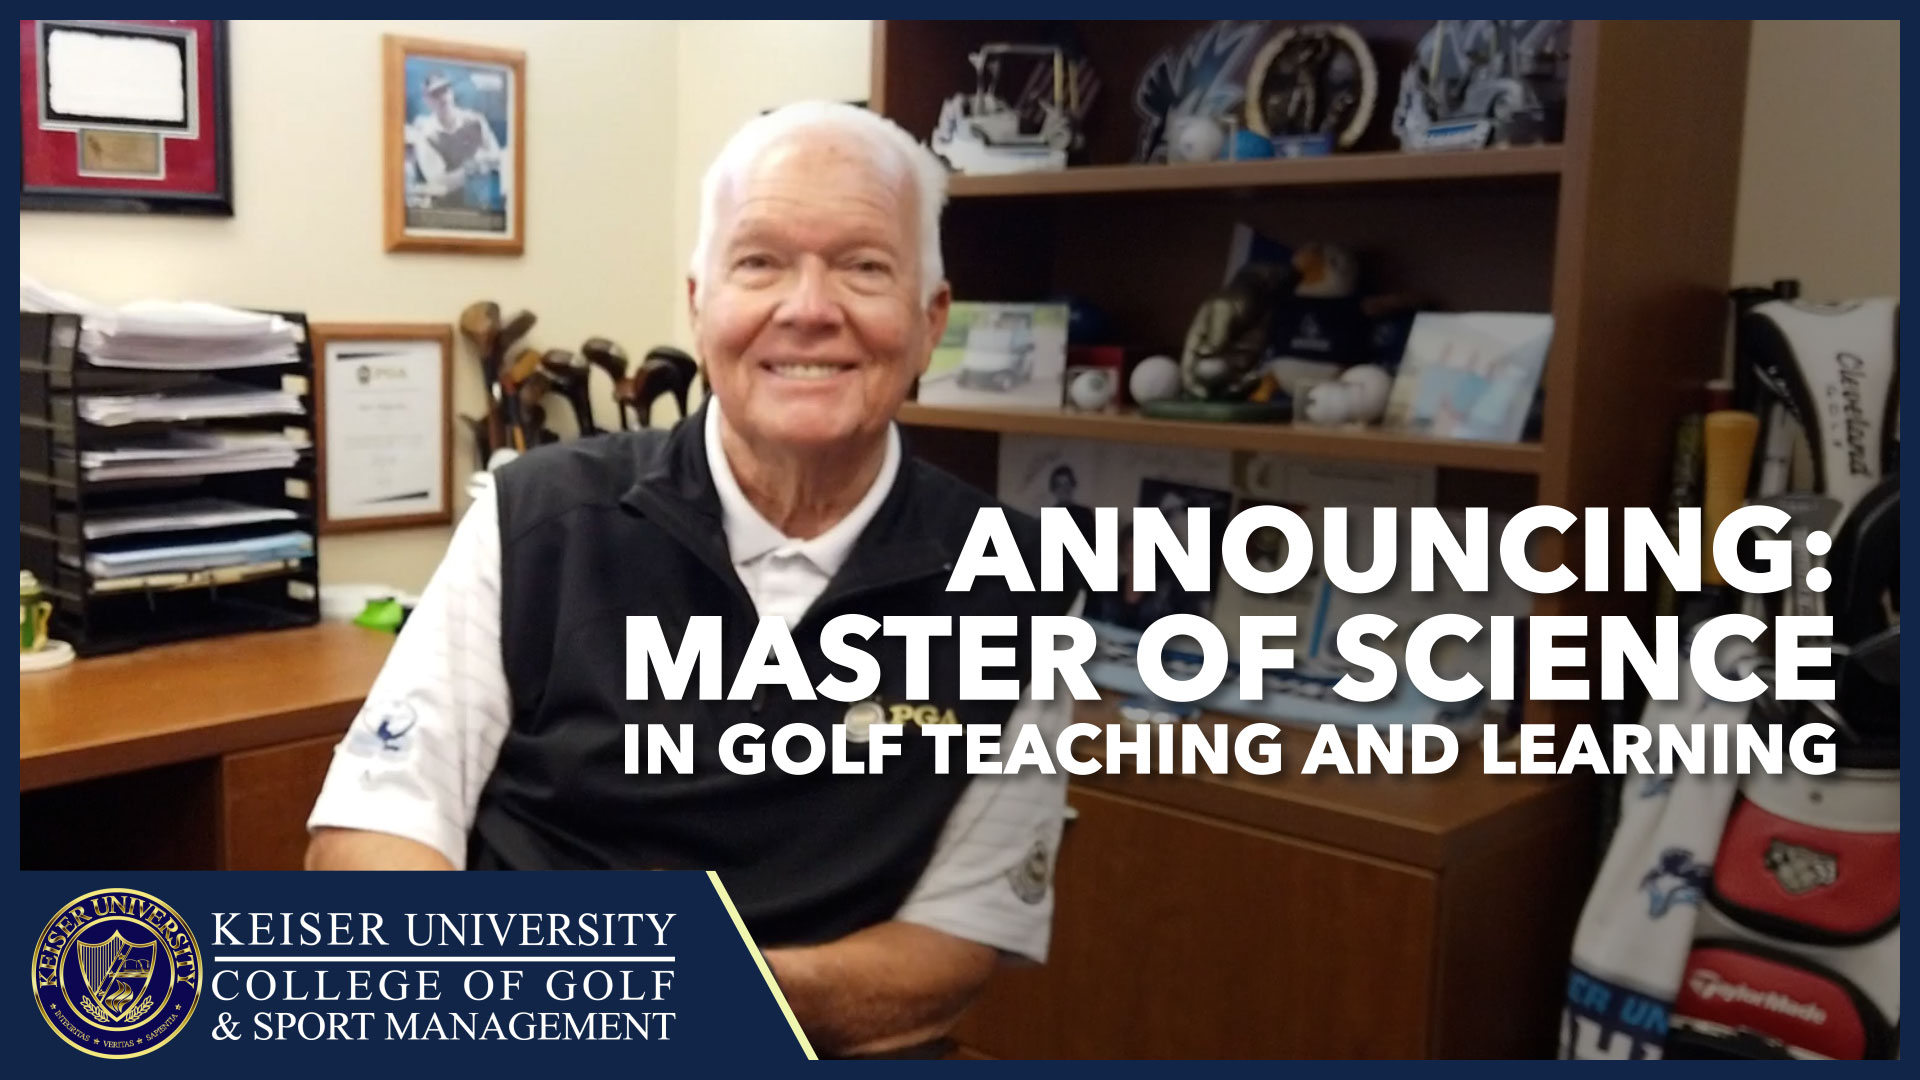 KEISER UNIVERSITY ANNOUNCES ONLINE MASTER OF SCIENCE DEGREE IN GOLF TEACHING AND LEARNING